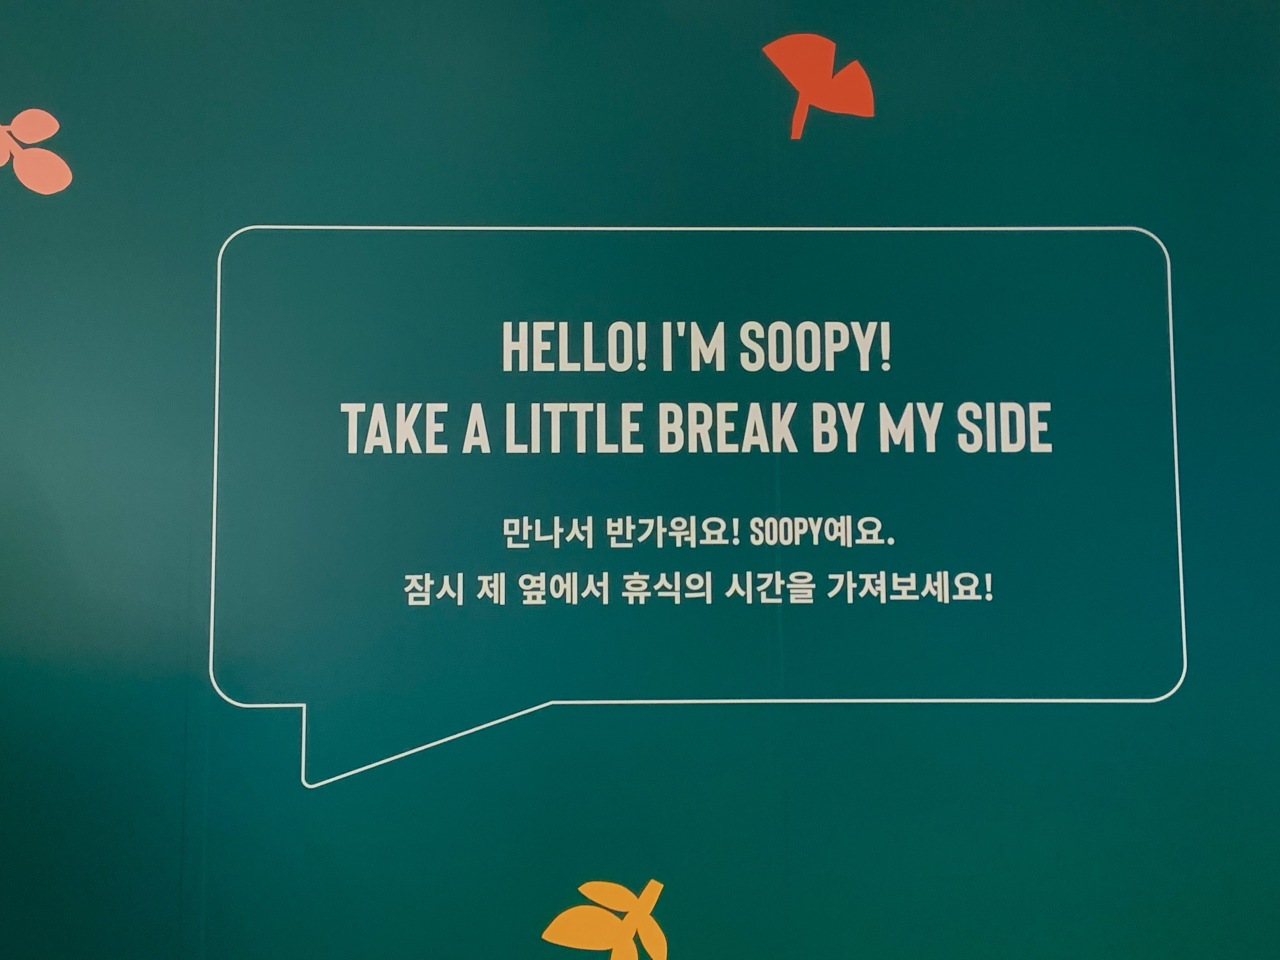 A message from Soopy welcomes visitors. (Park Jun-hee/The Korea Herald)